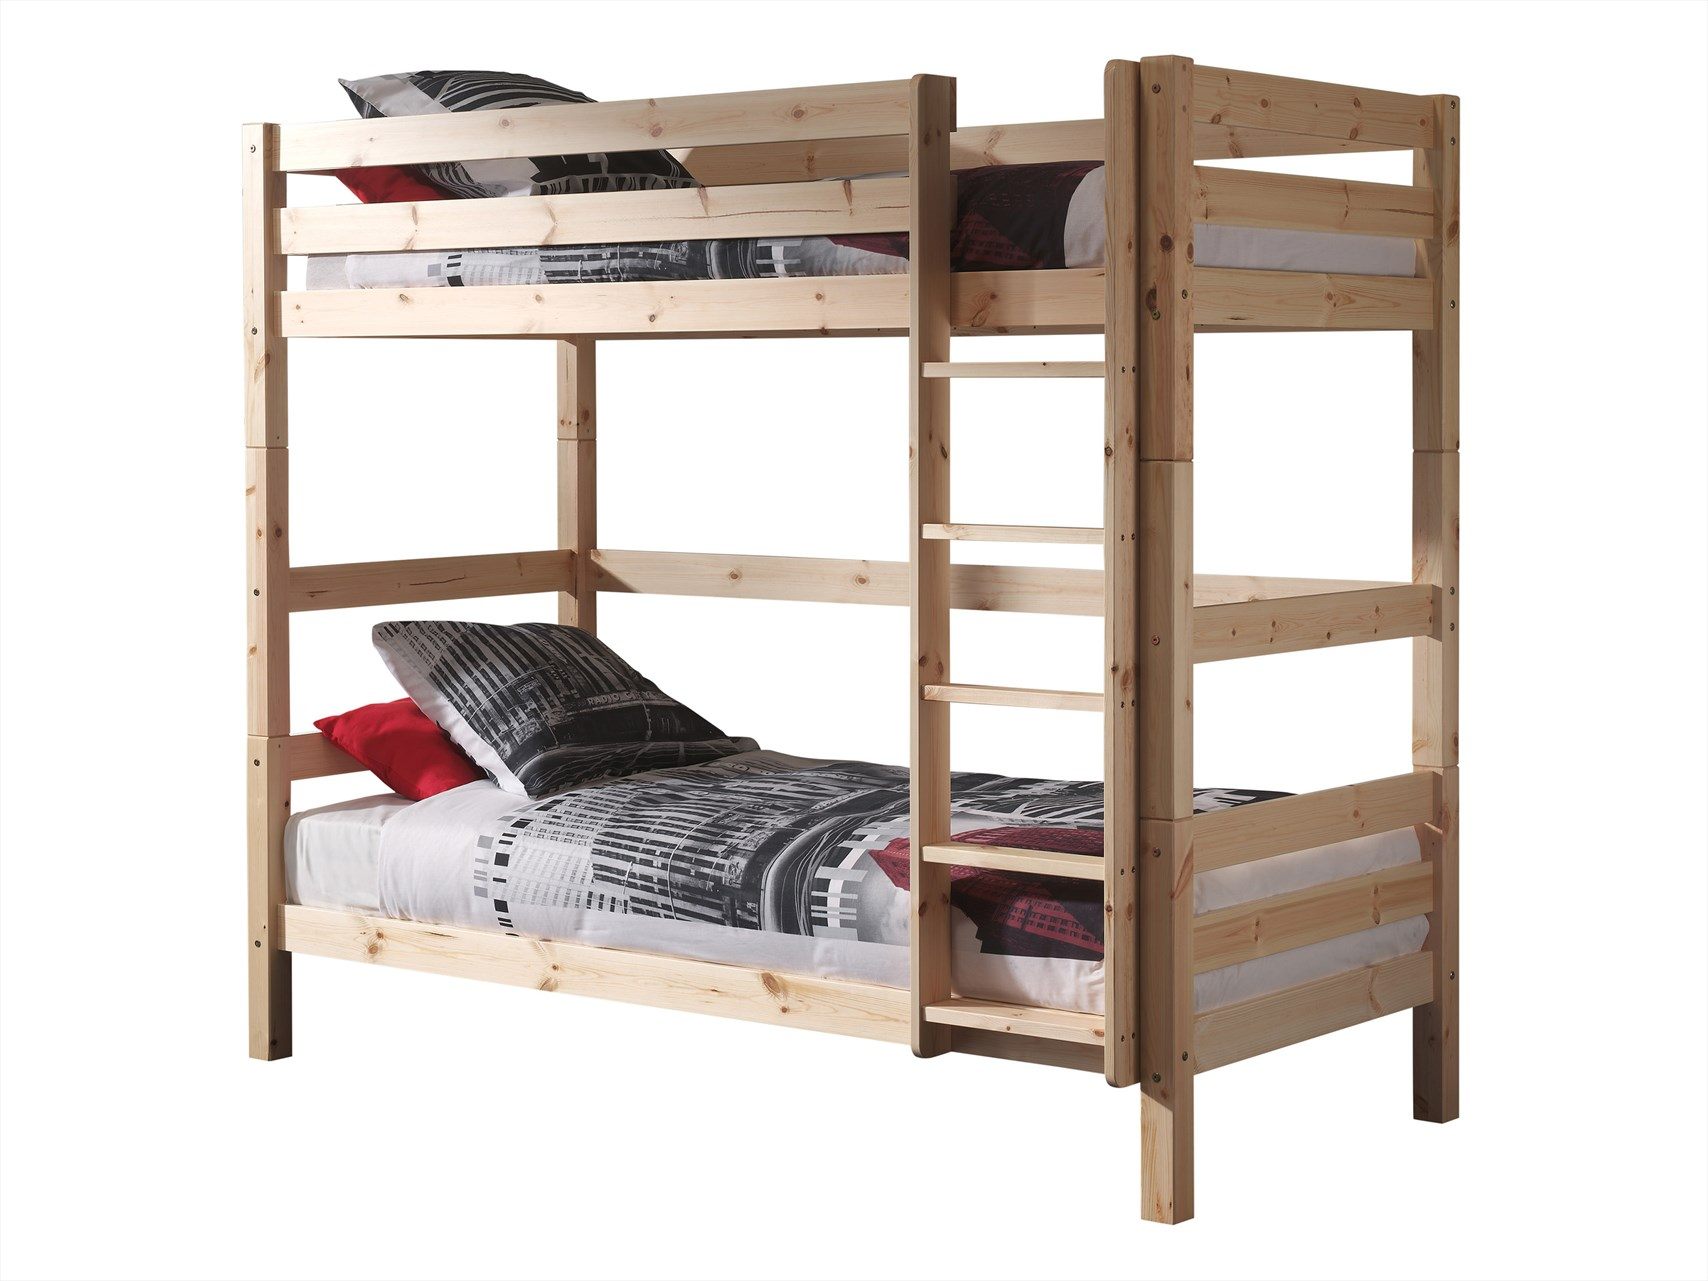 Stapelbed 180 Cm Hoog.Vipack Stapelbed Pino Natuur Hout 180cm